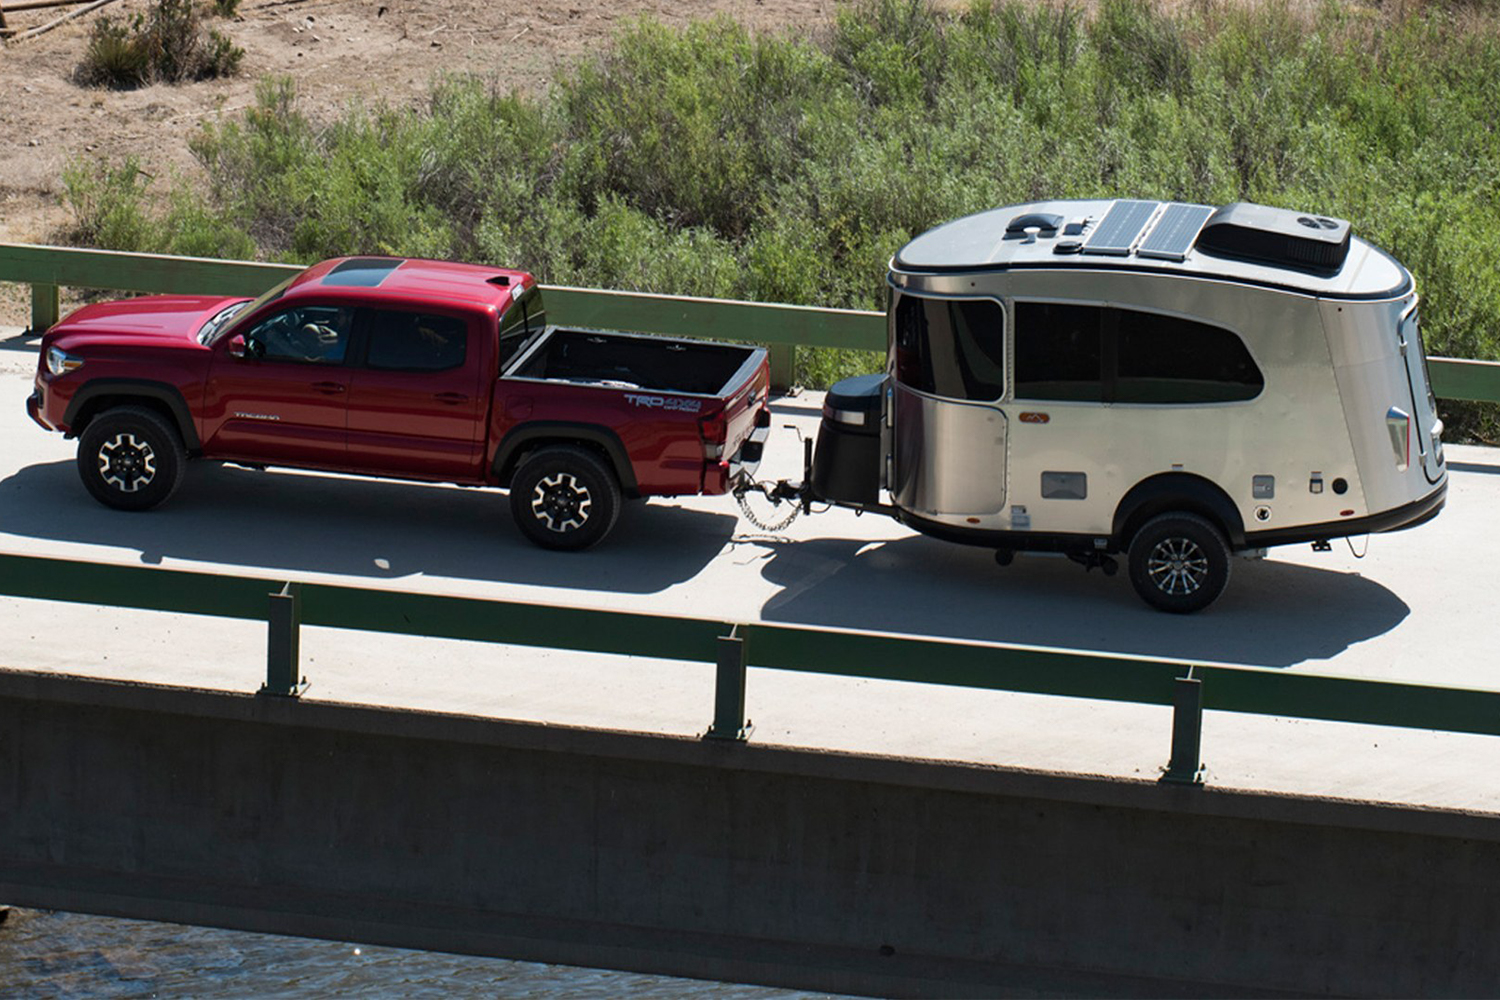 Airstream Basecamp trailer being towed behind a pickup truck